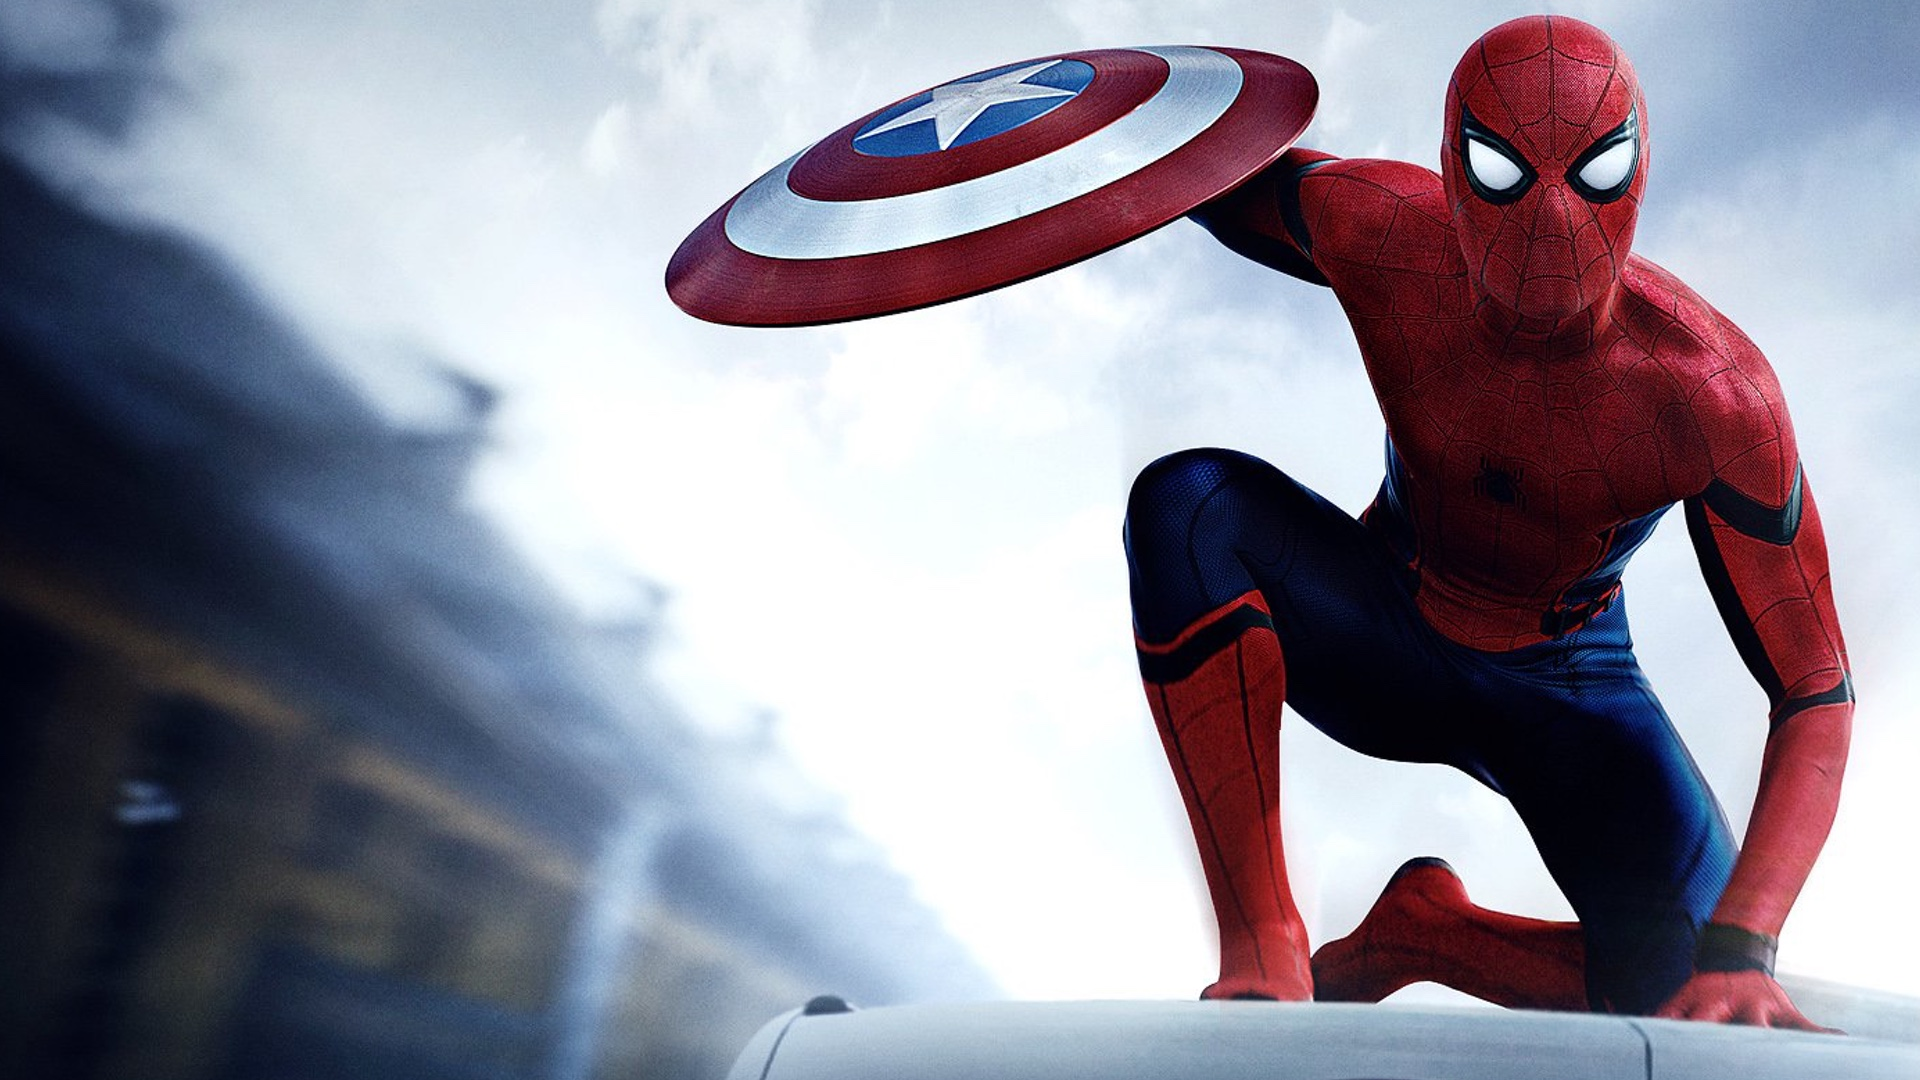 spider-man-homecoming-will-be-a-diverse-film-that-explores-new-things